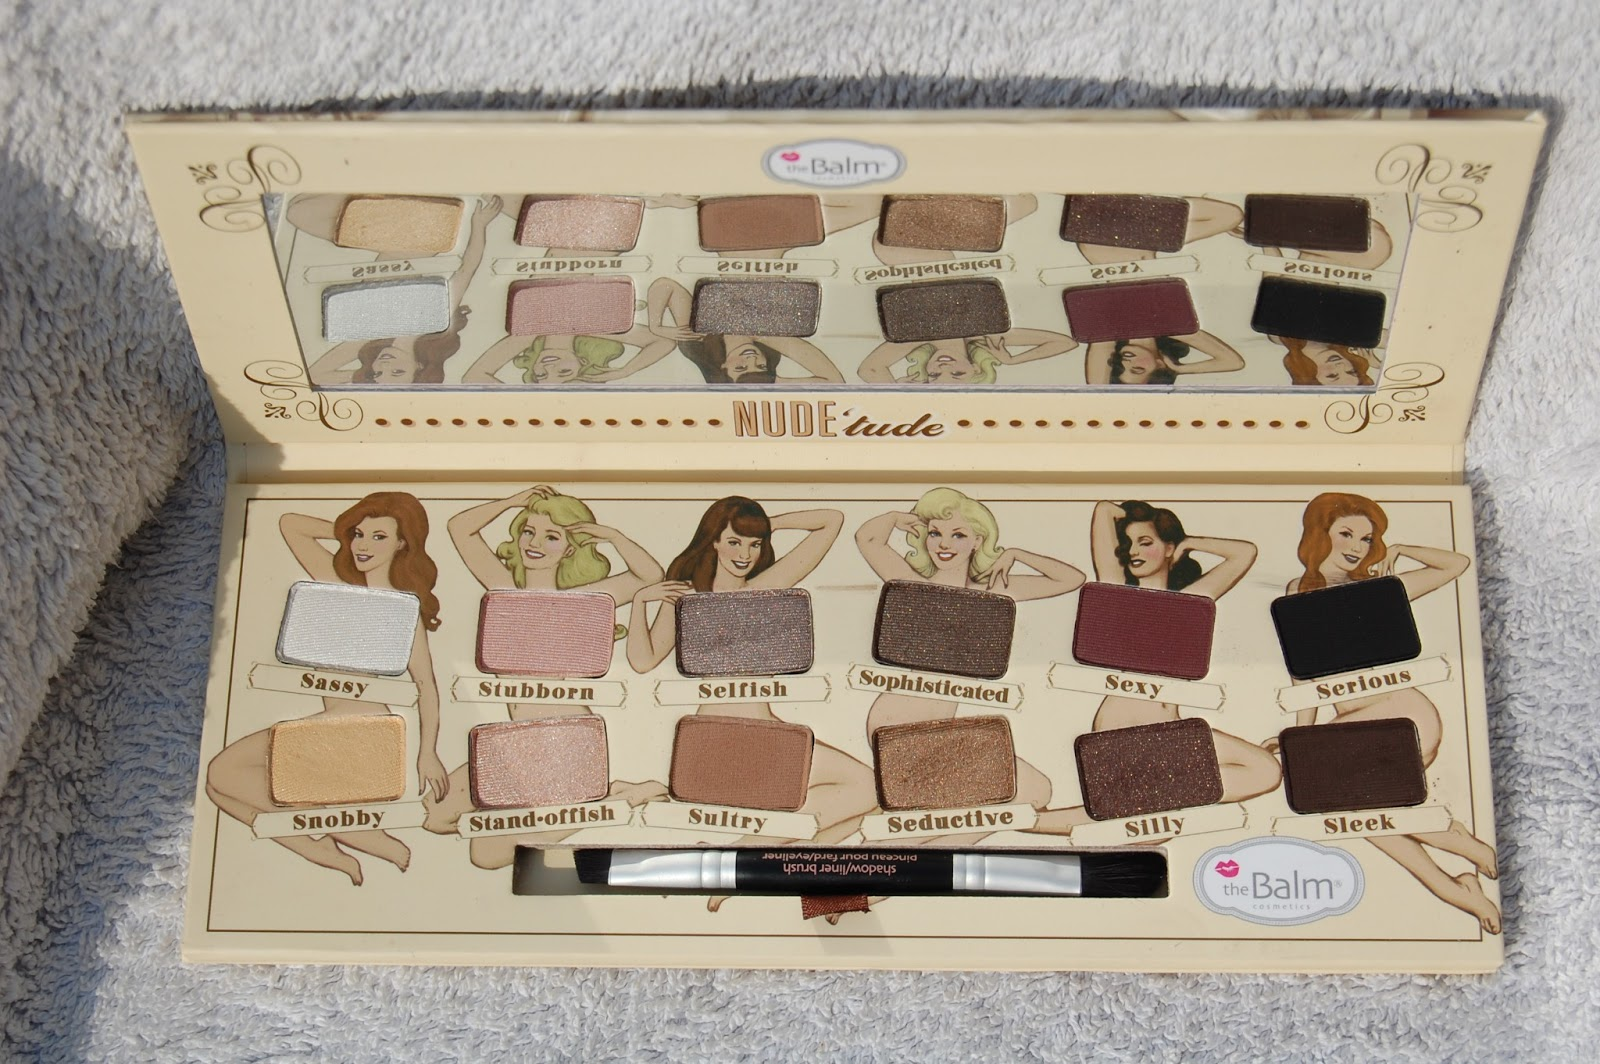 theBalm Nude tude Eyeshadow Palette: Review and Swatches